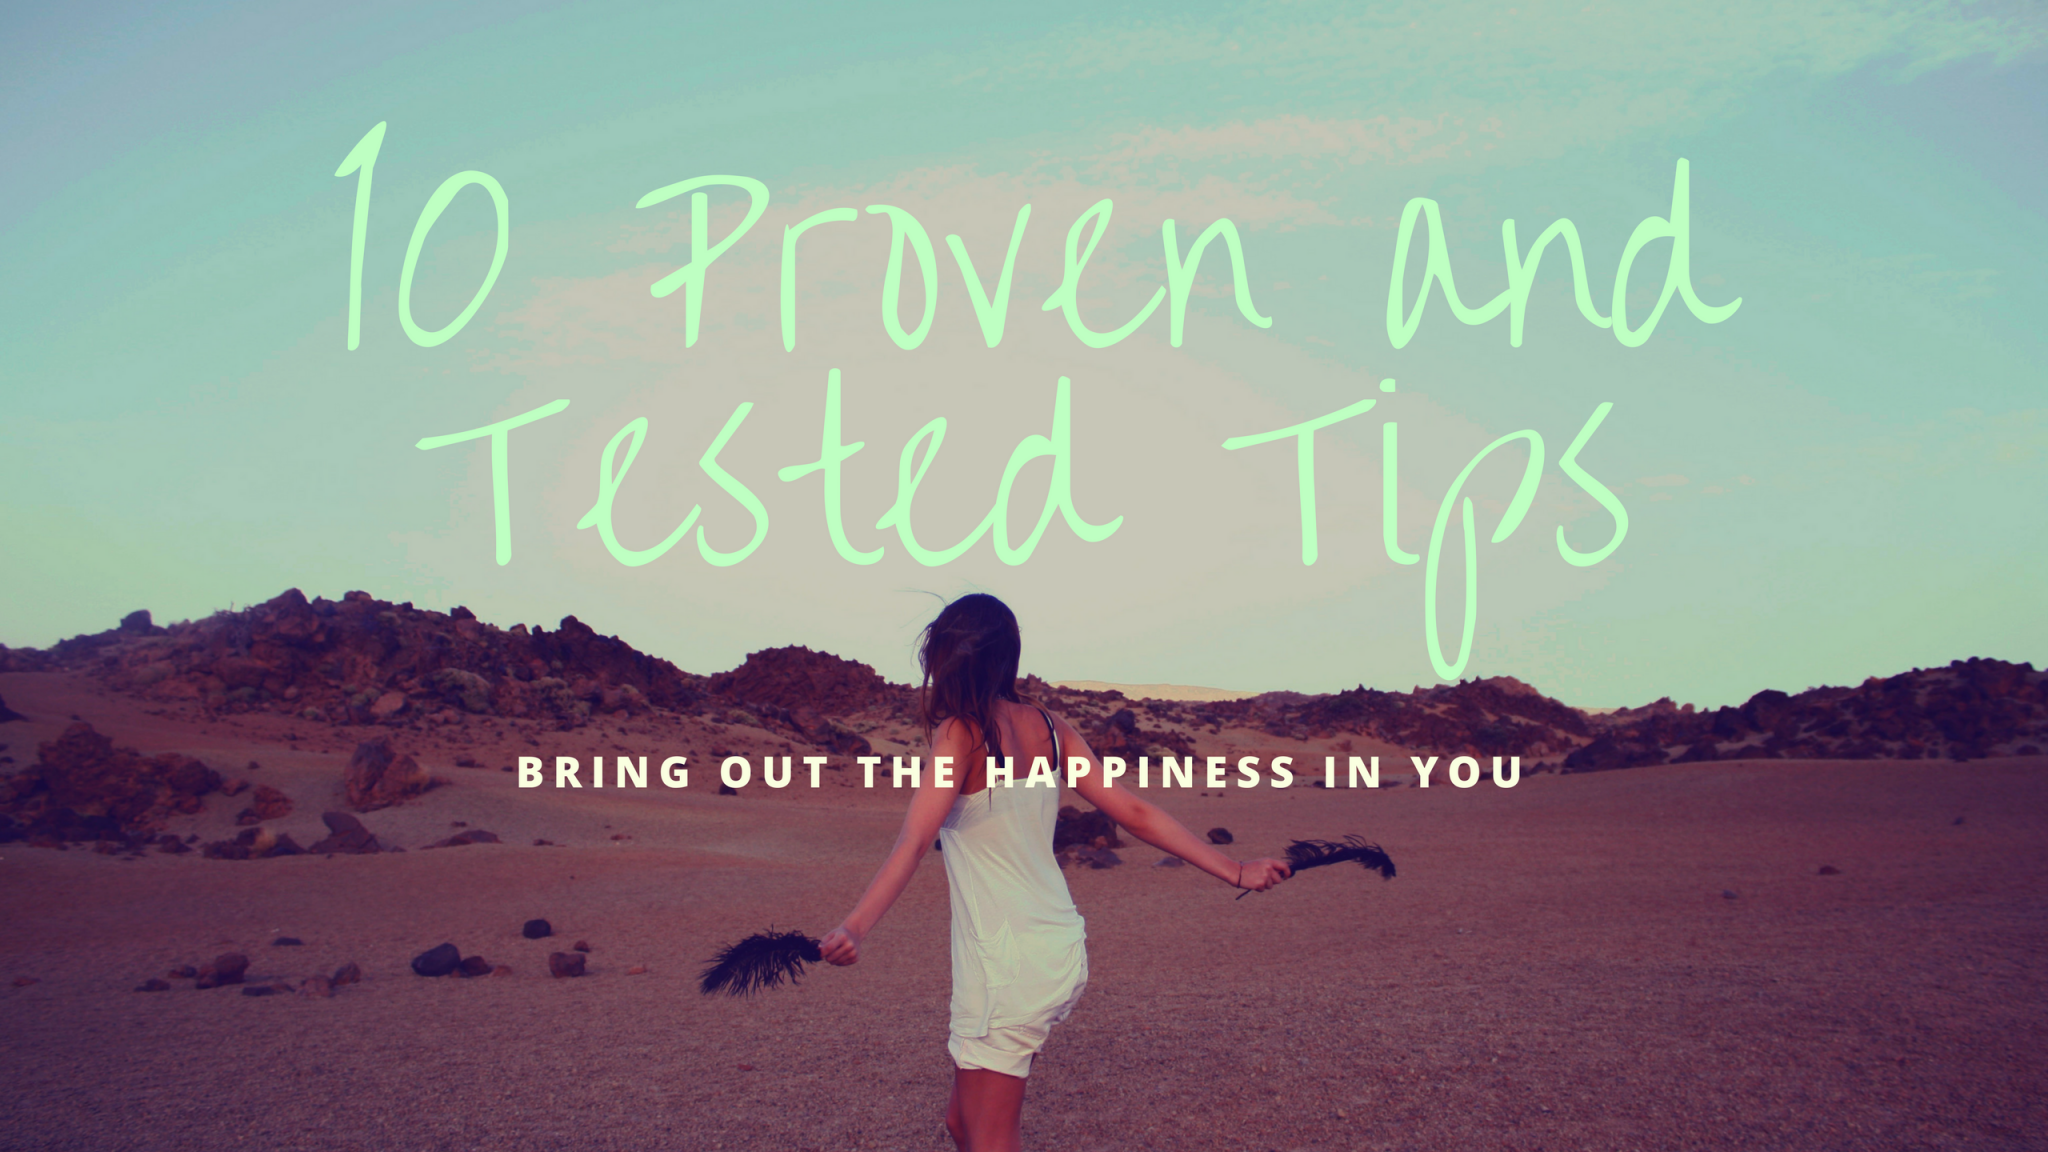 10 Proven and Tested Tips Bring Out the Happiness in You